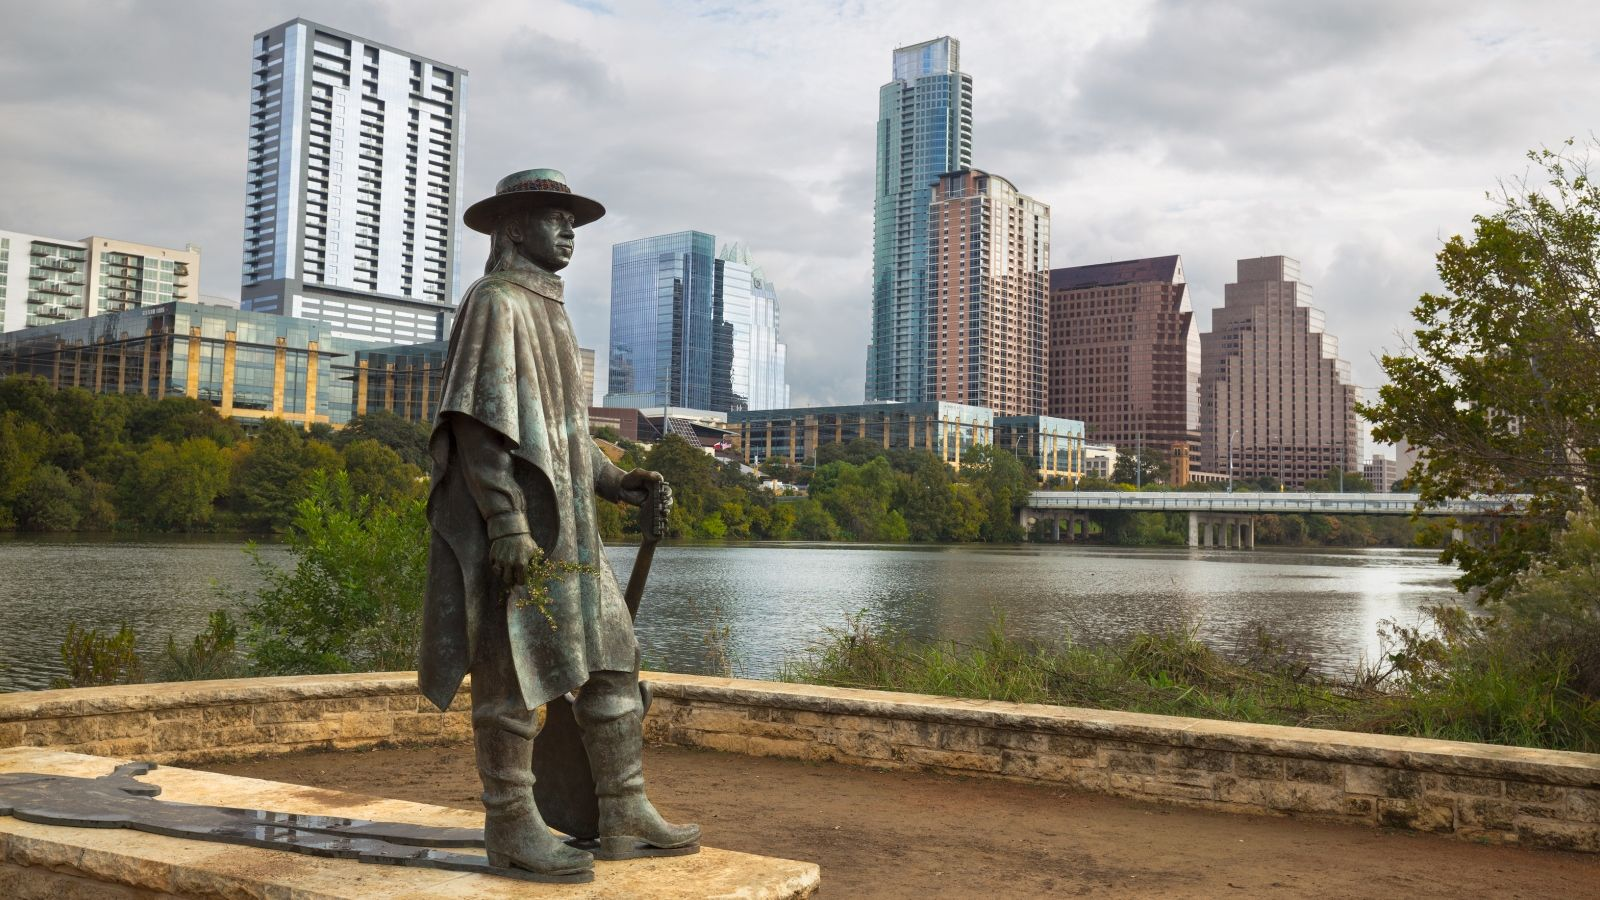 Things to do in Downtown Austin - Culture